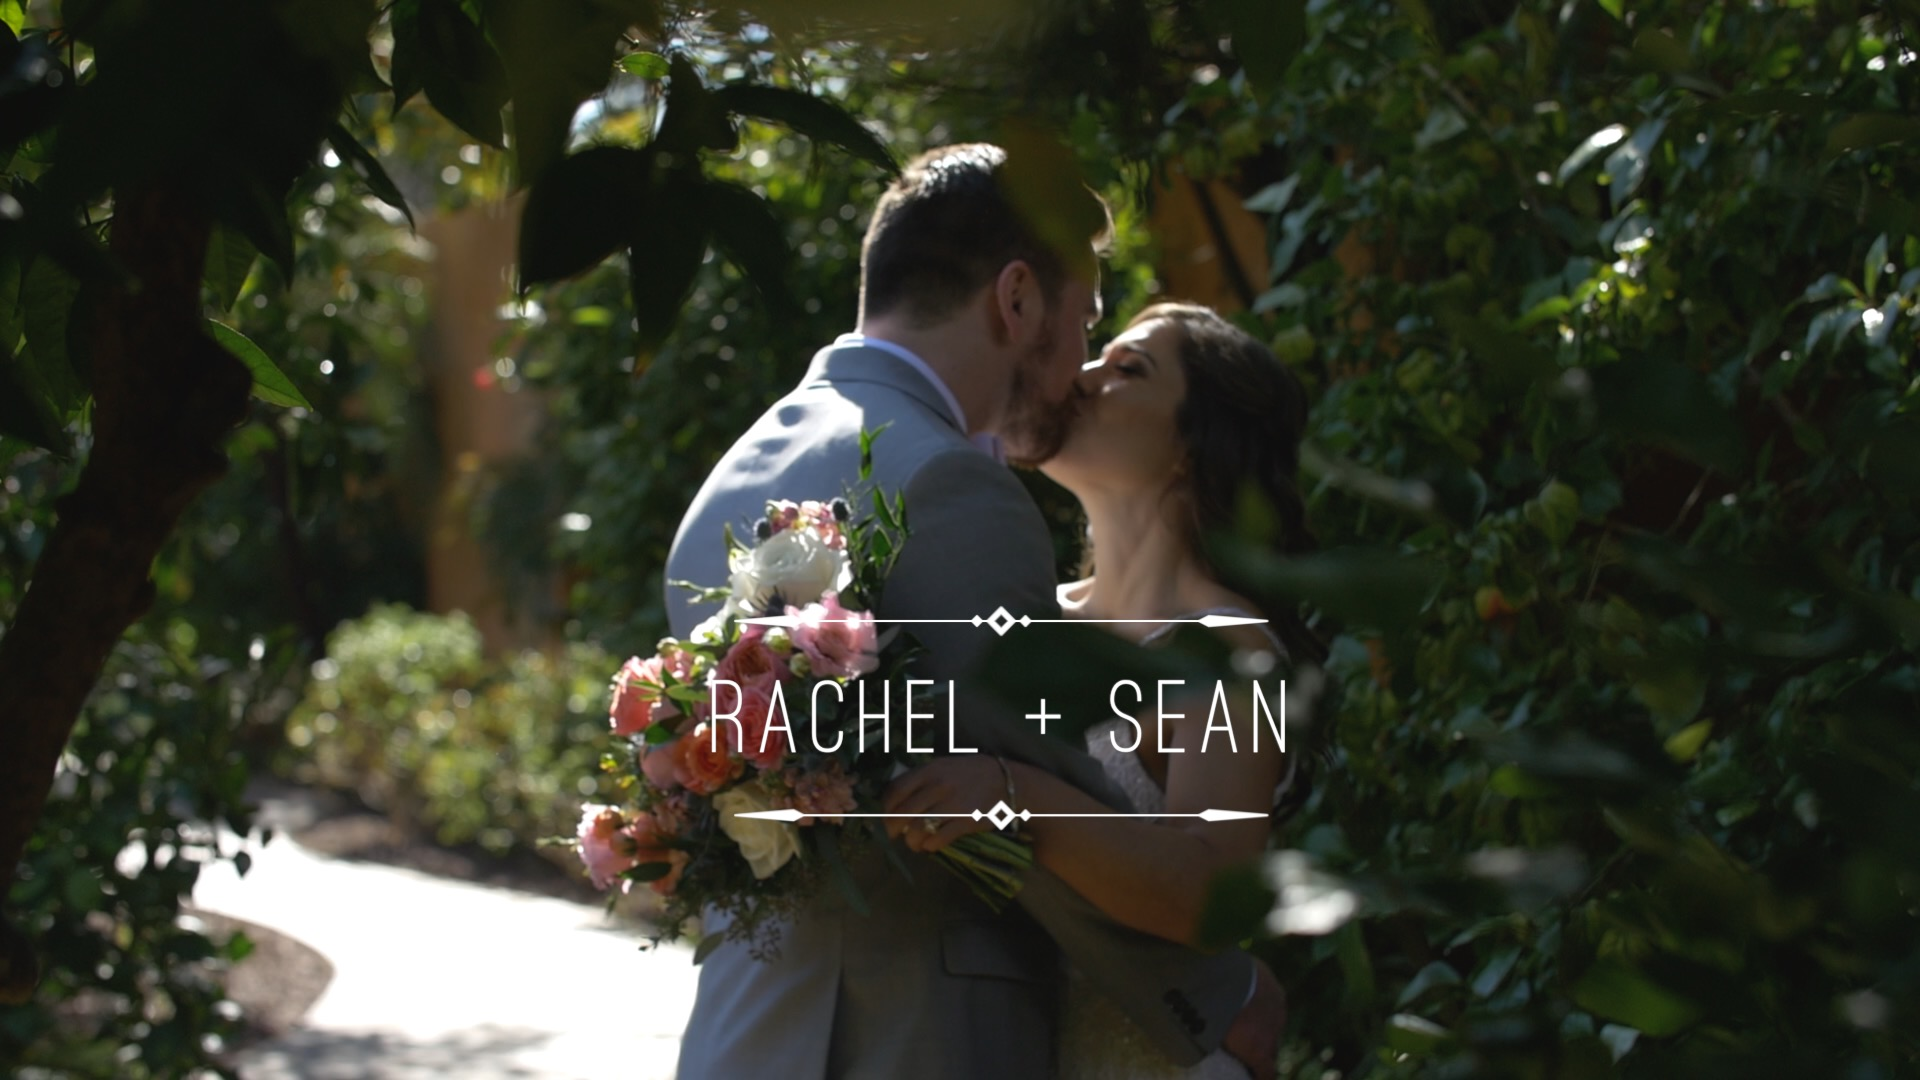 Rachel + Sean | Phoenix, Arizona | Royal Palms Resort